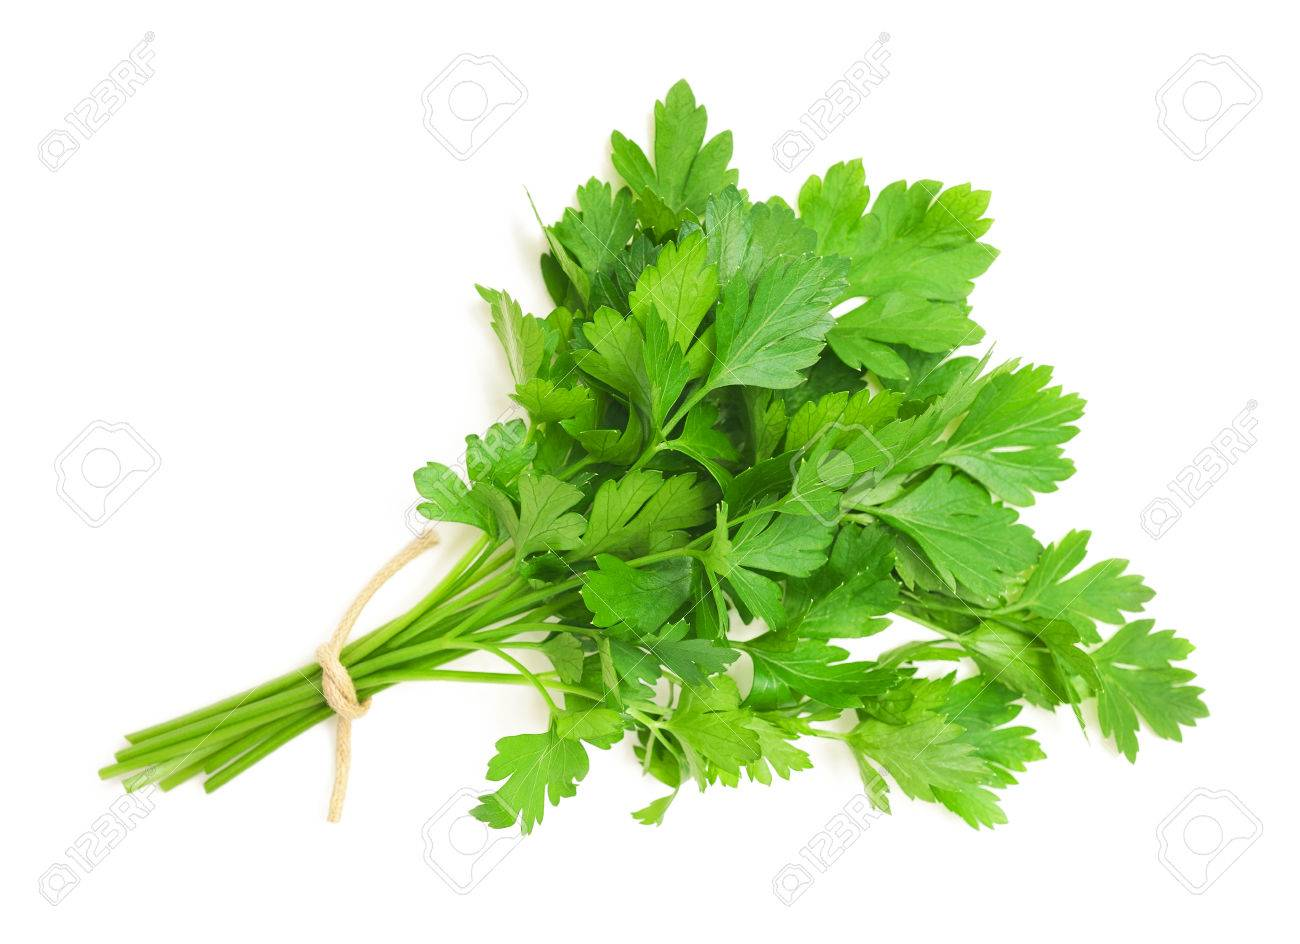 parsley bunch isolated on white background - 41262847